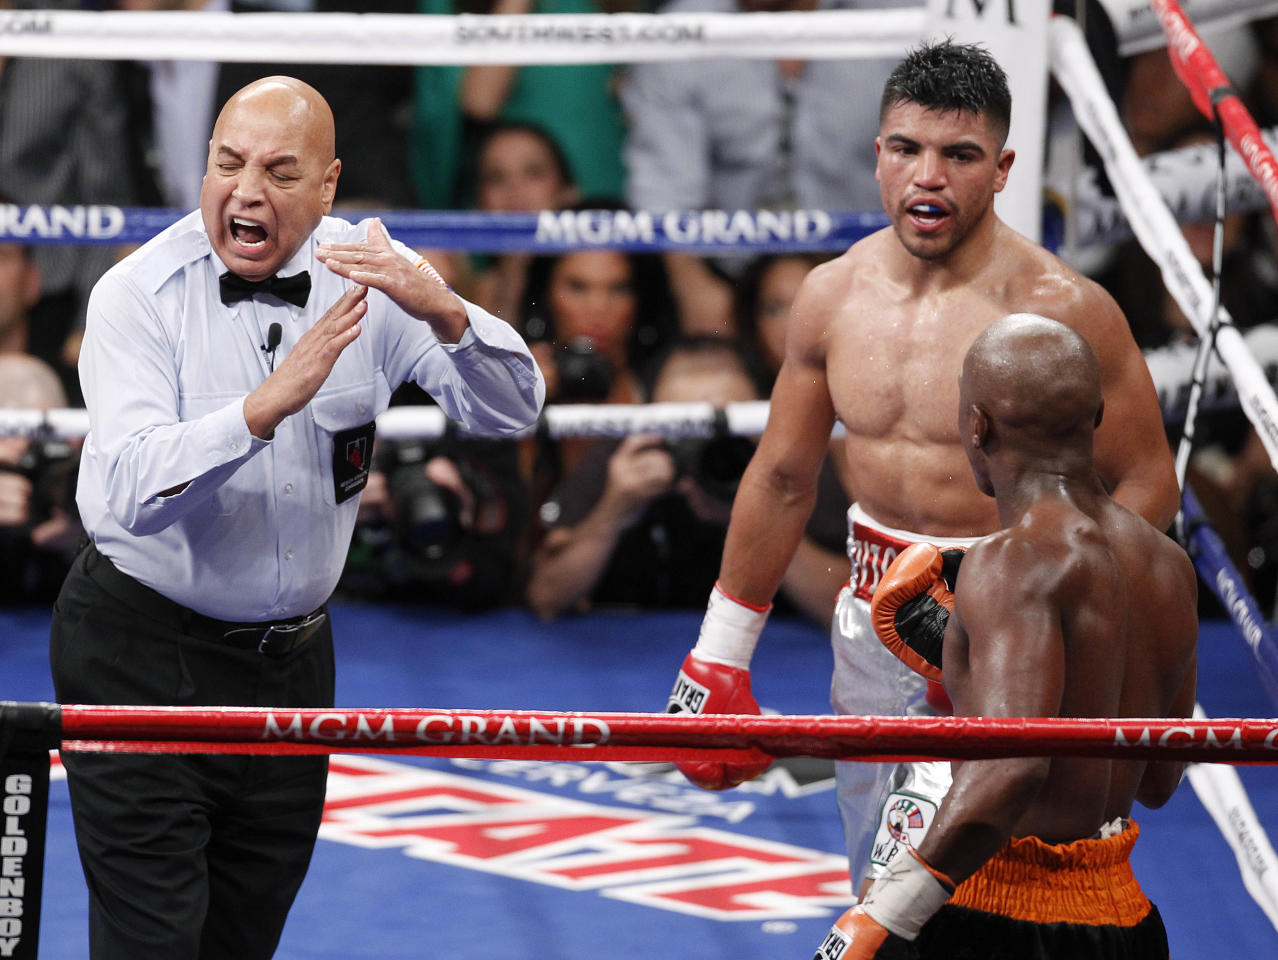 Referee Joe Cortez calls time after Victor Ortiz, top right, head butted Floyd Mayweather in the fourth round during a WBC welterweight title fight, Saturday, Sept. 17, 2011, in Las Vegas. Mayweather won by knockout in the fourth round. (AP Photo/Eric Jamison)